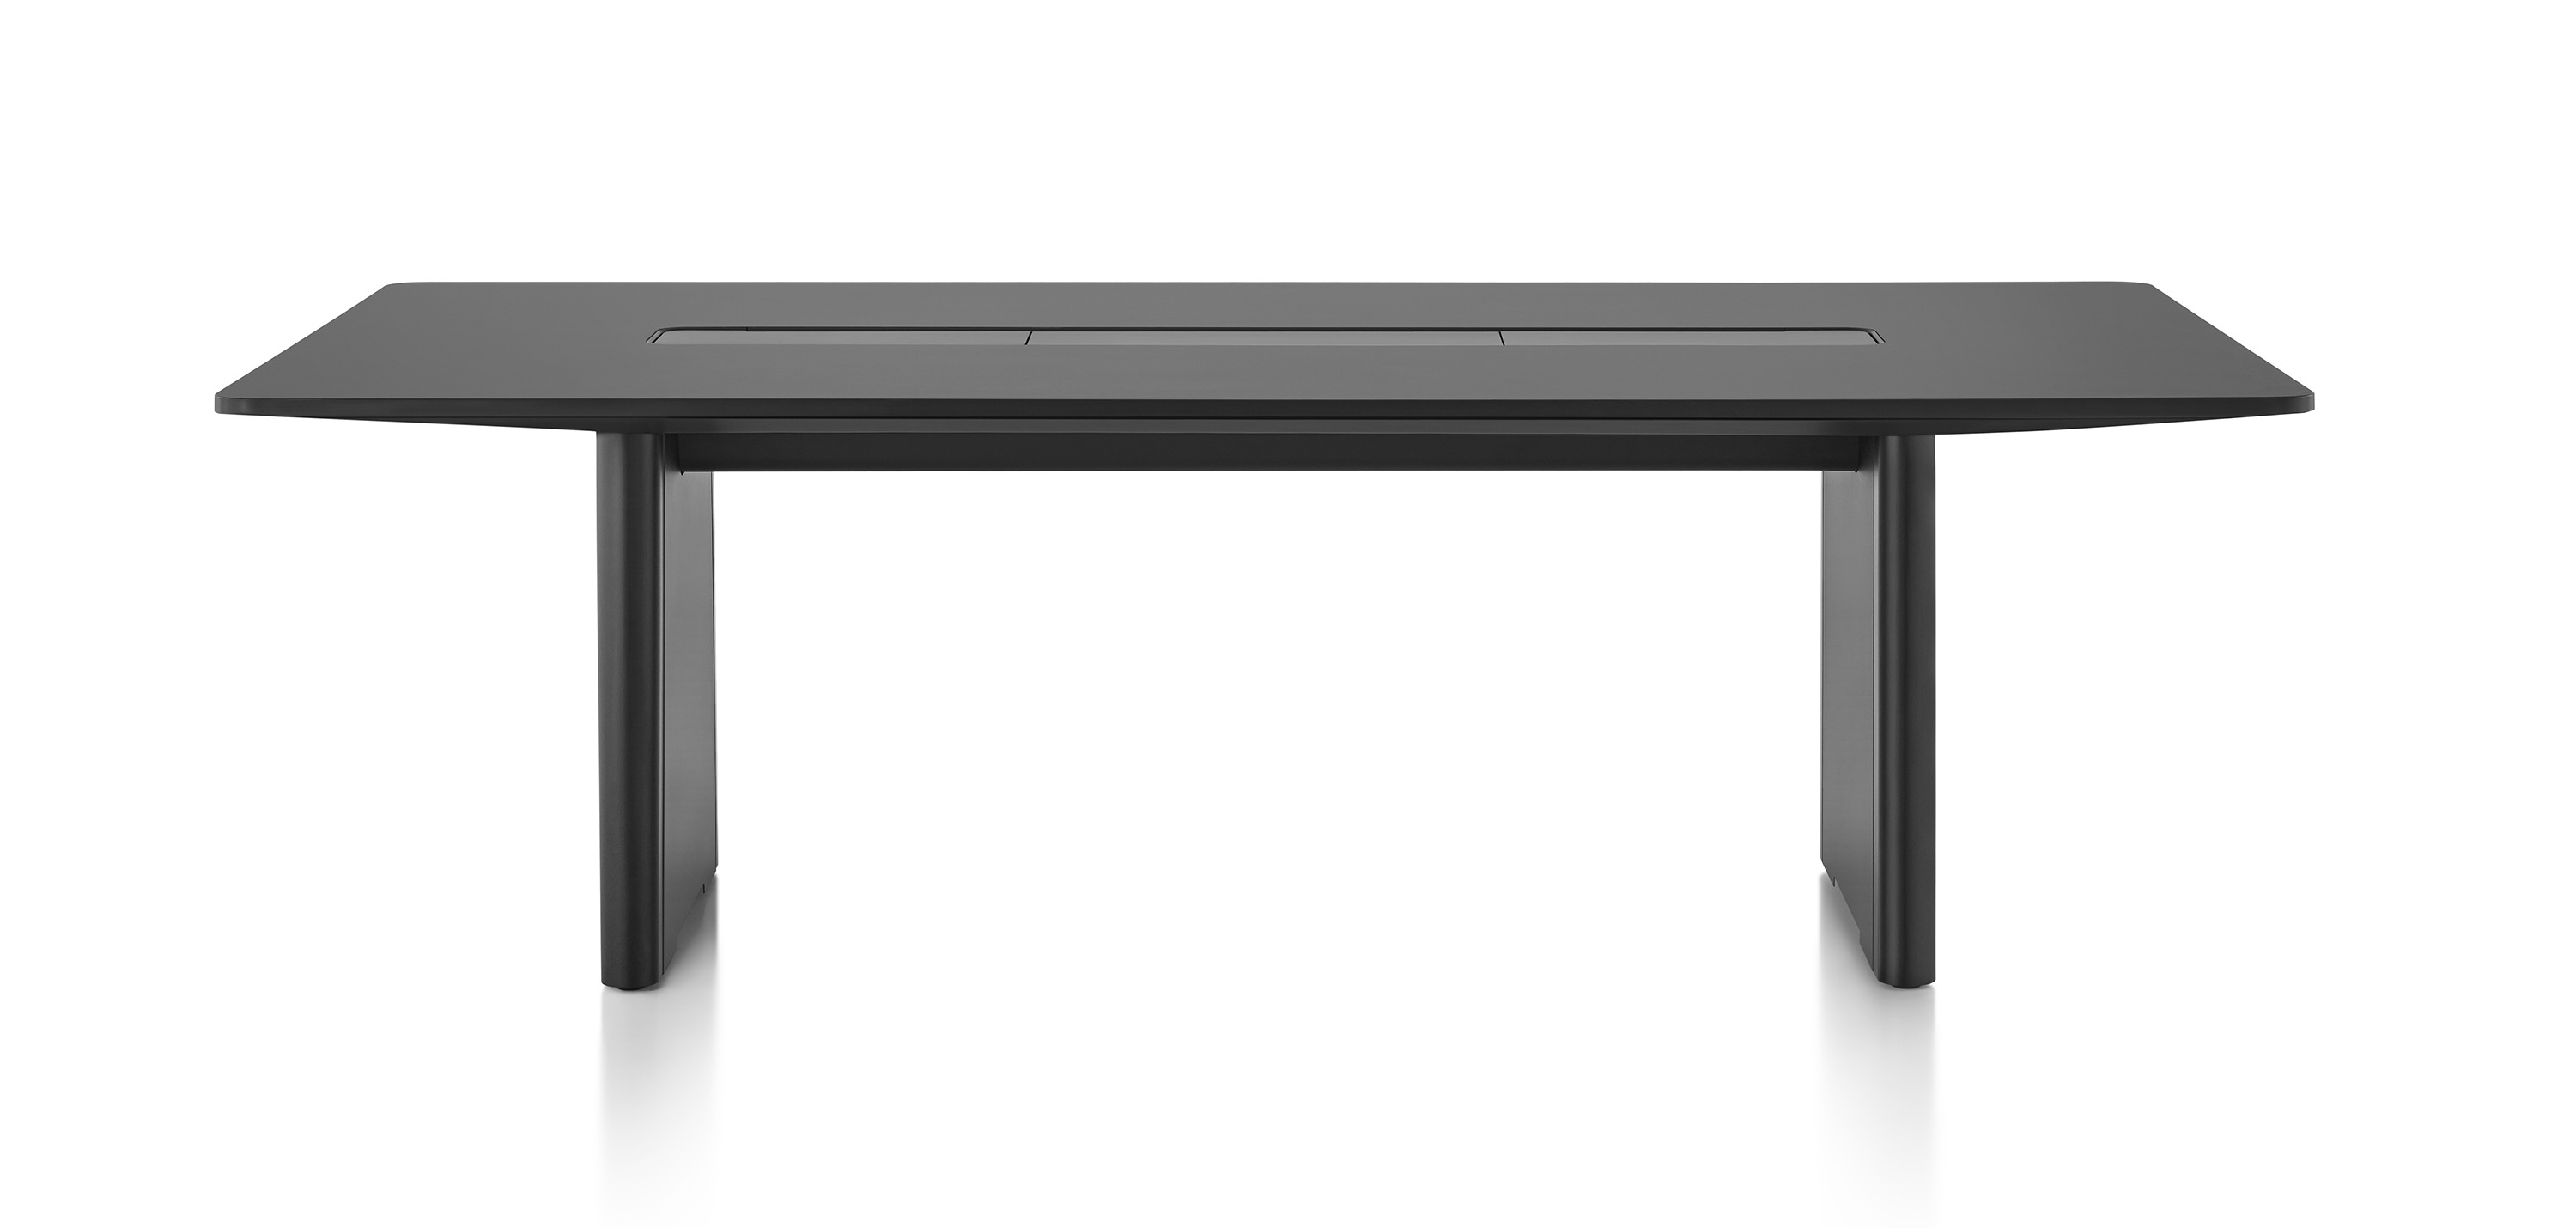 Geiger - Axon Table Features Formica Infiniti® Surface